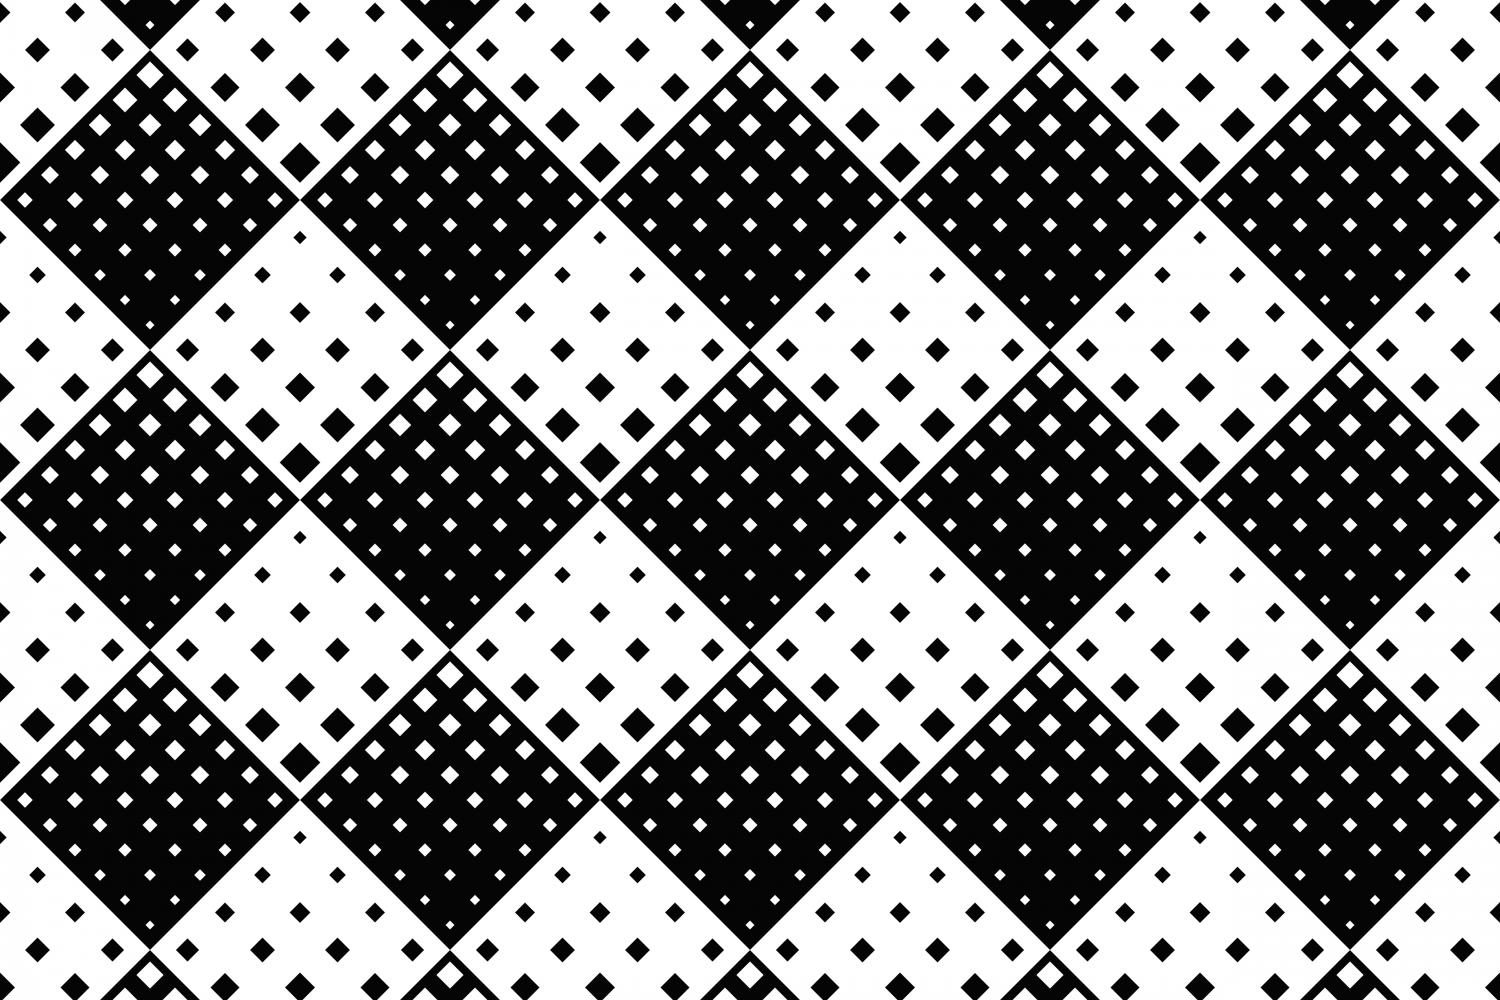 24 Seamless Square Patterns example image 24